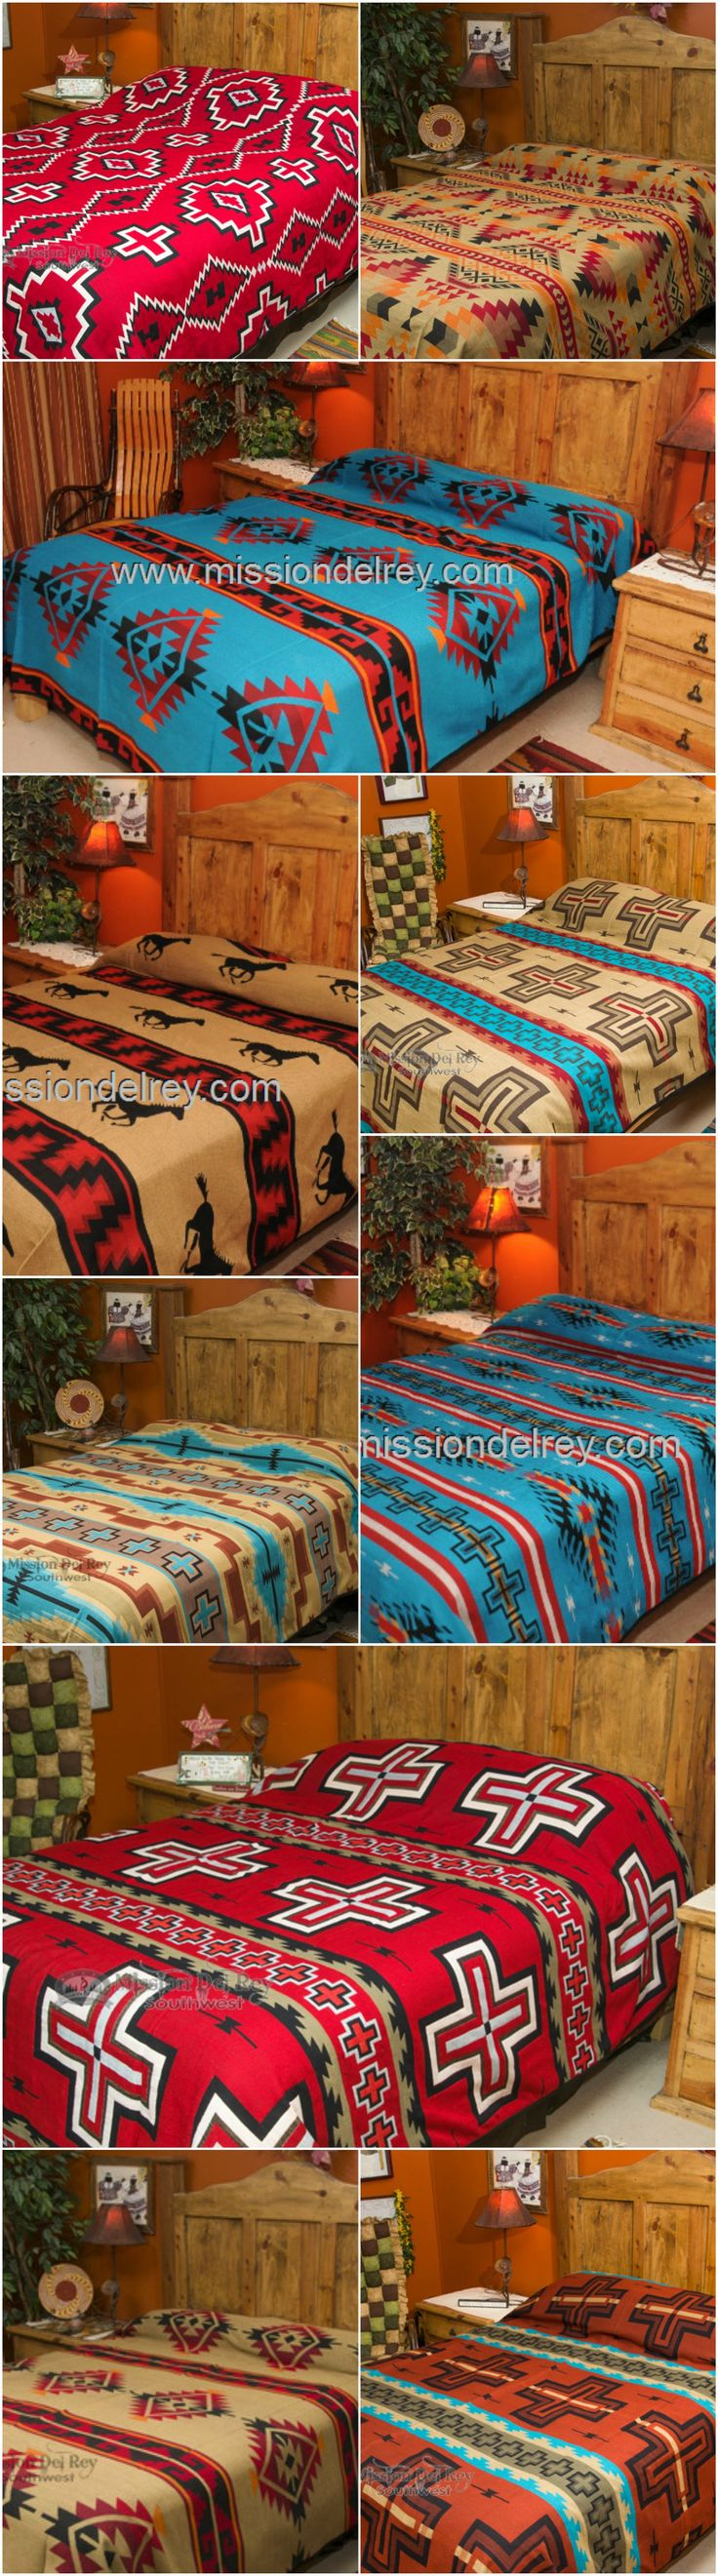 best 25+ western bedding ideas on pinterest | southwestern bedroom